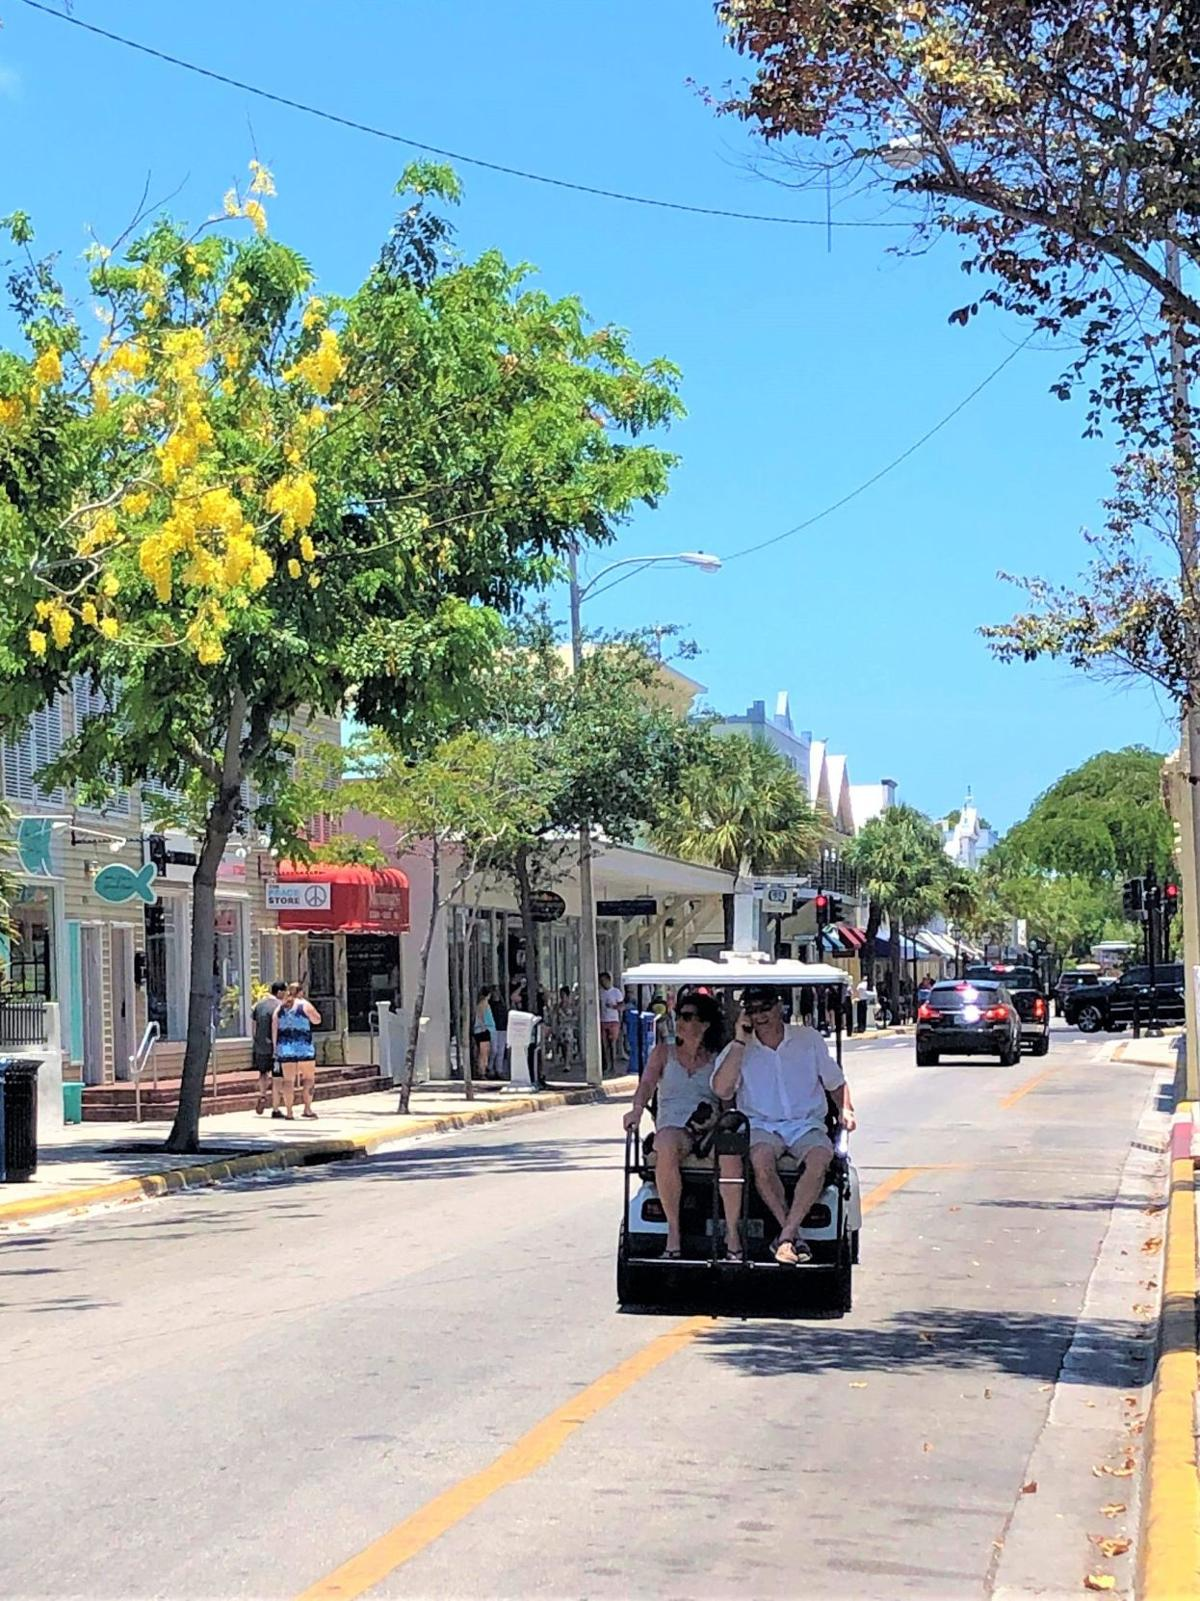 Spending a day in historic Key West